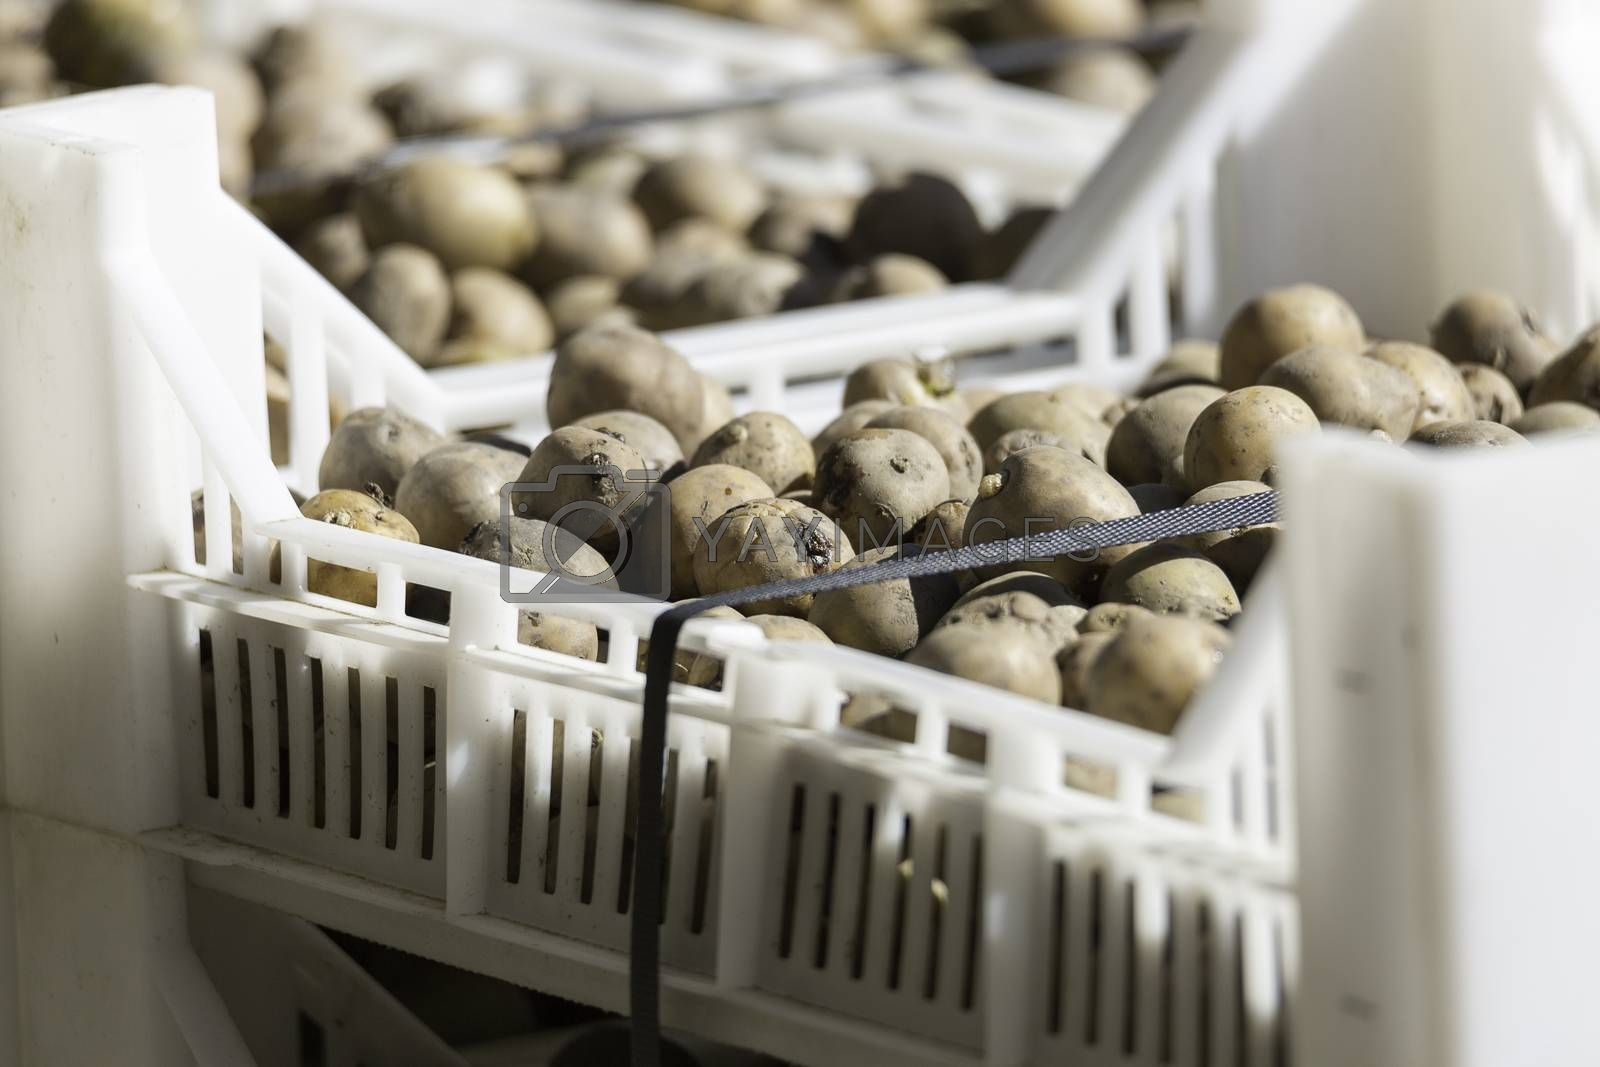 Seed Potatoes in Plastic Crate.